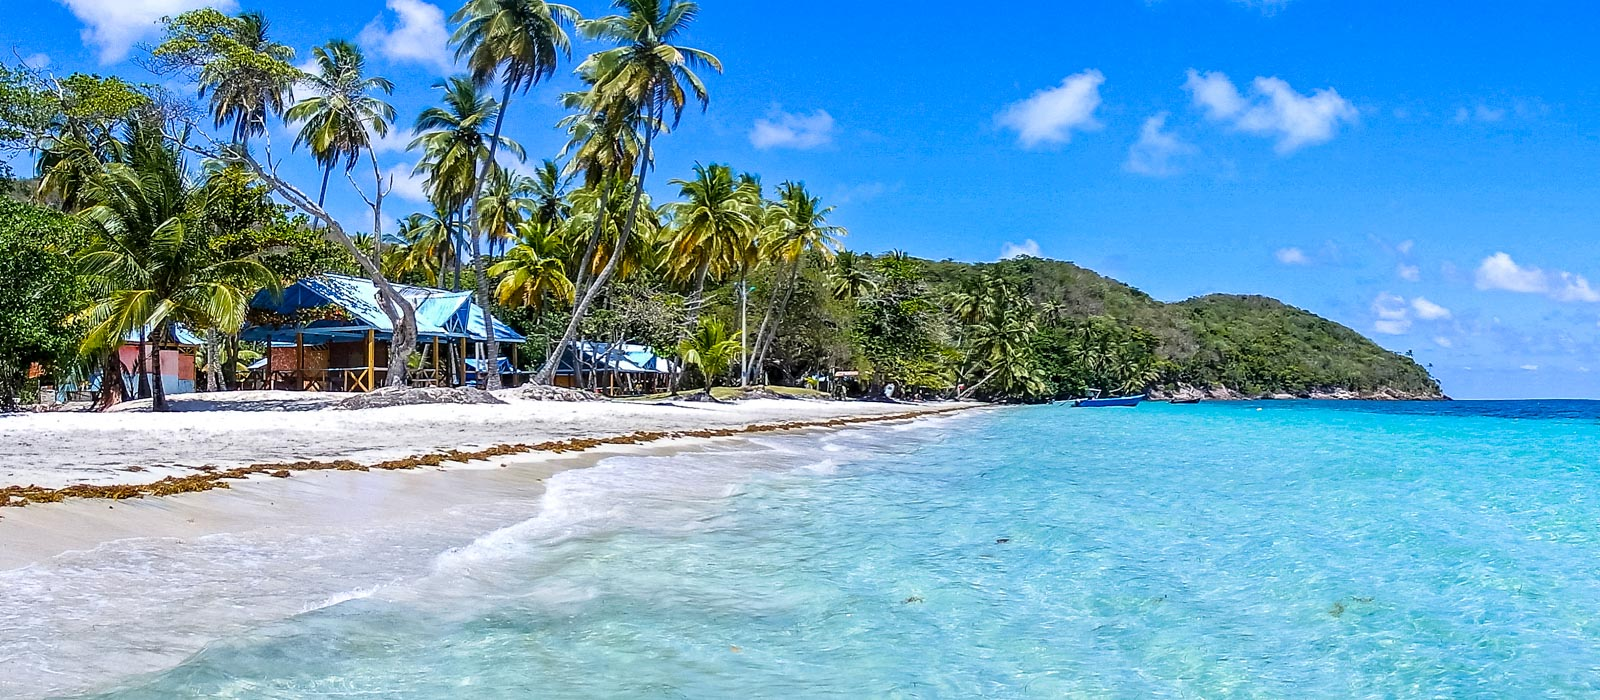 Why travelling Providencia Island shows you true paradise. The view along one of the main beaches with white golden sands and clear blue waters